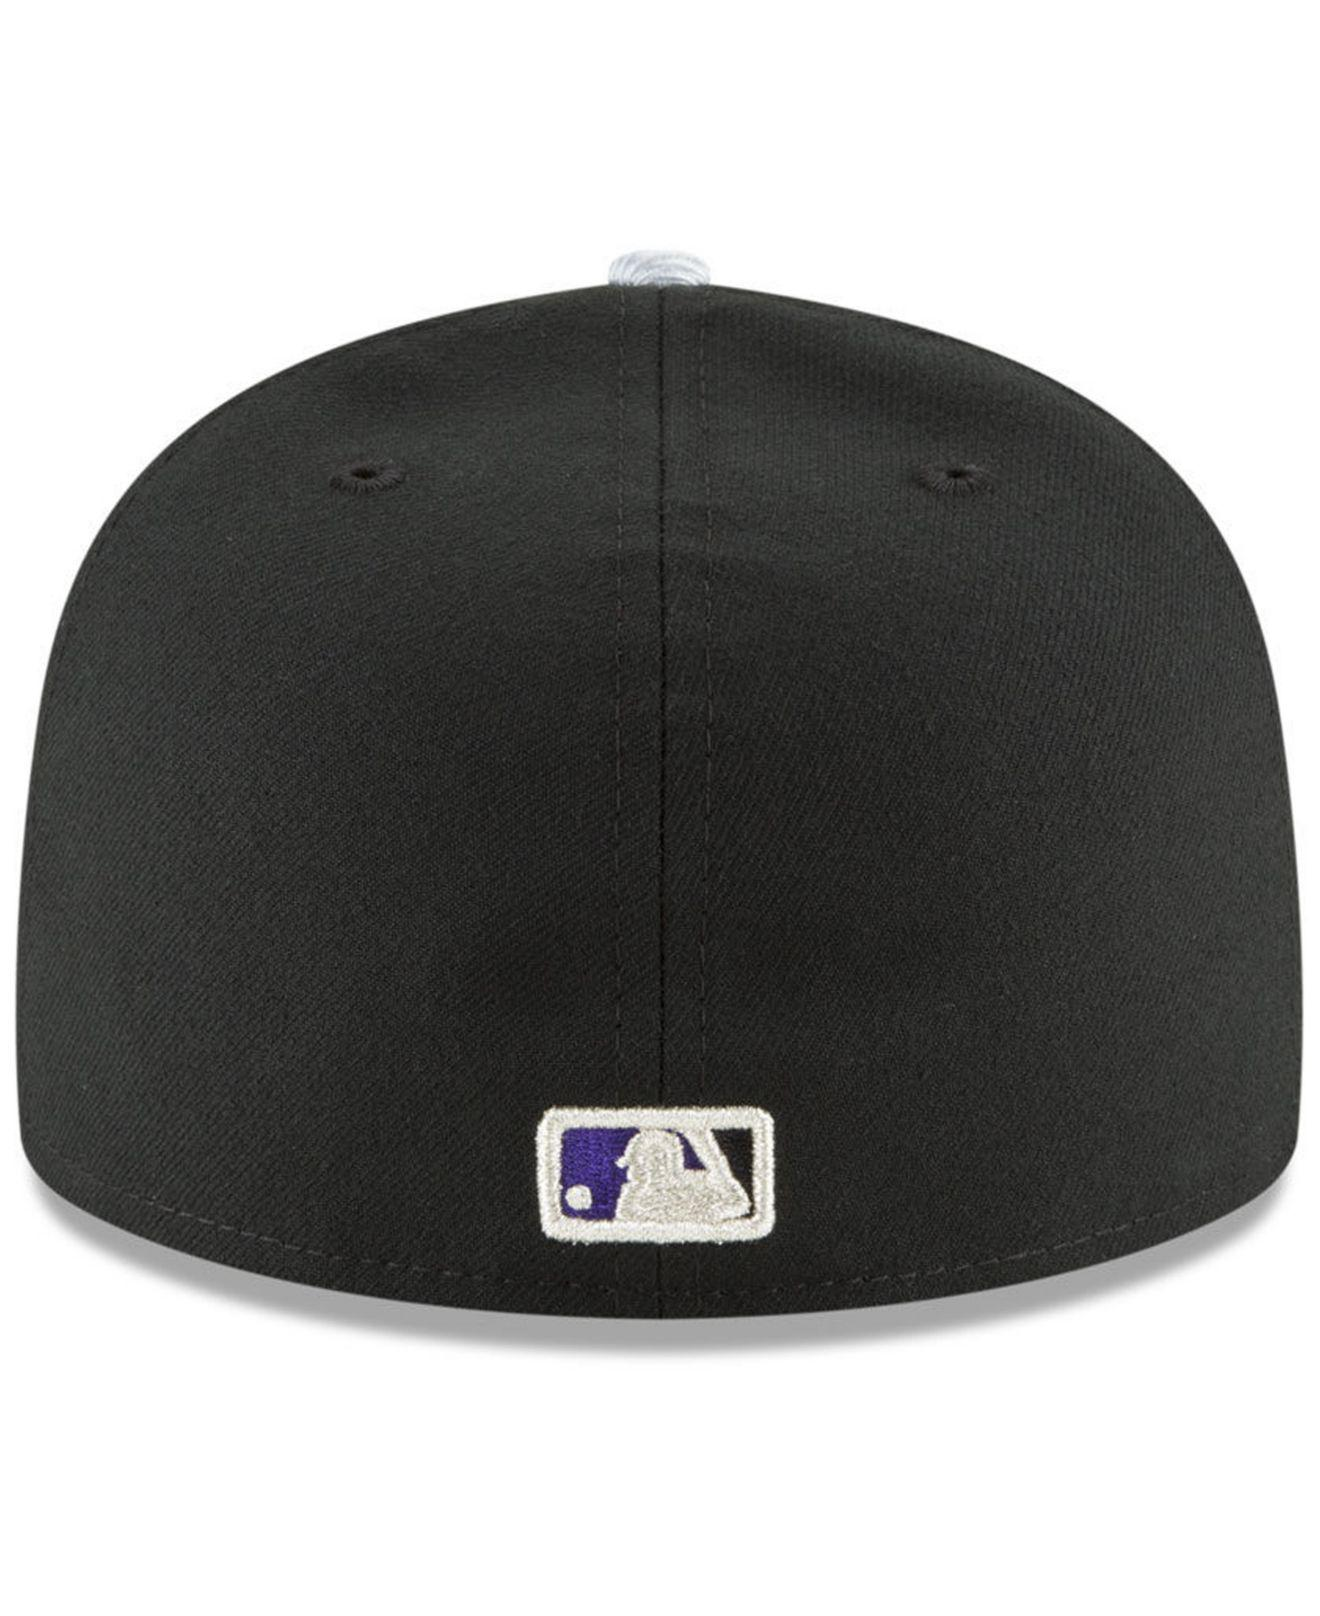 free shipping 0552a 1be9c KTZ Colorado Rockies Authentic Collection 25th Anniversary 59fifty ...